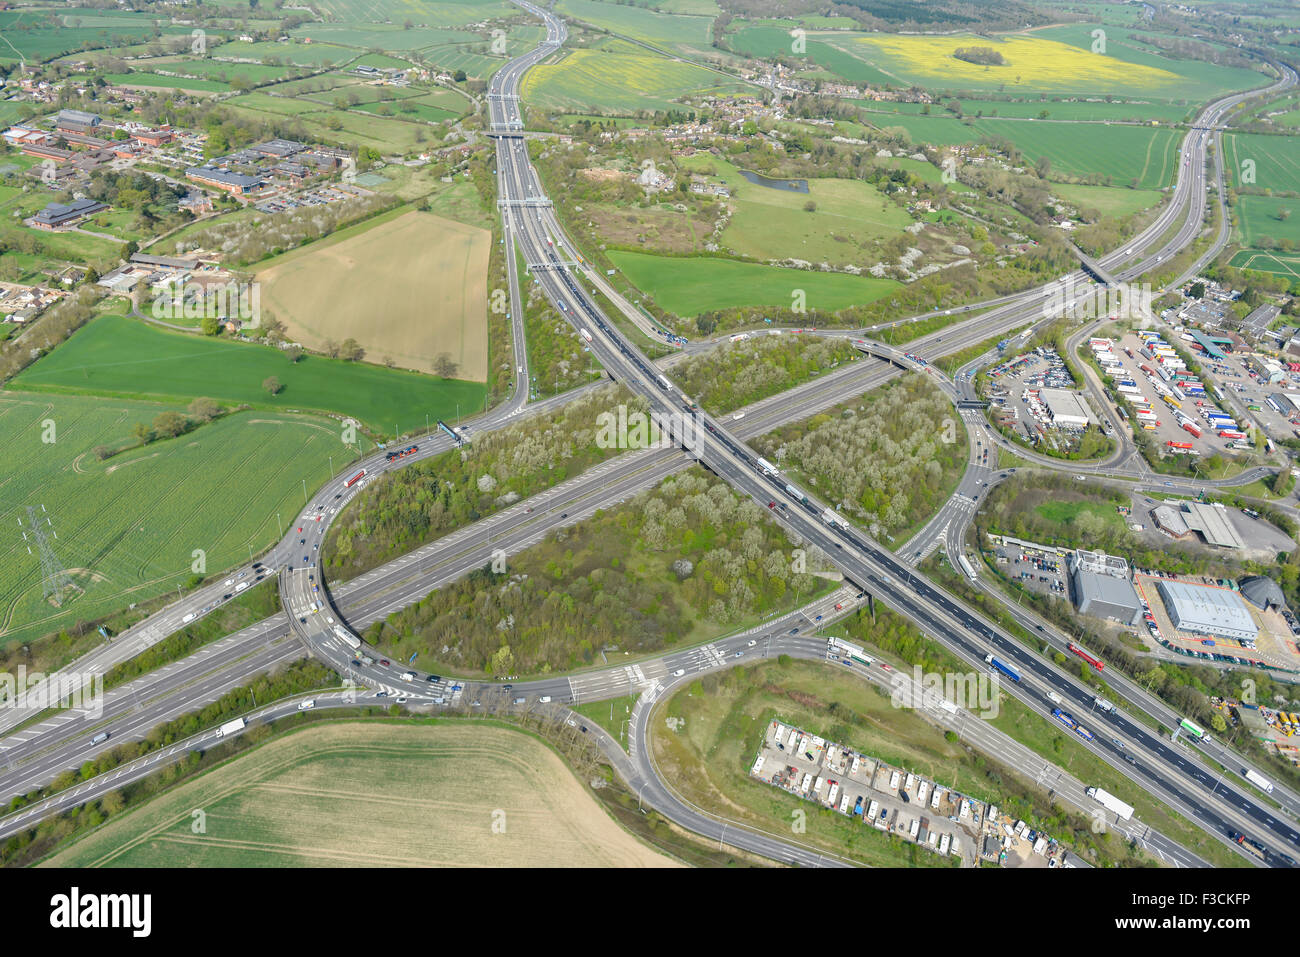 Aerial photograph of A1(M)-M25 junction, South Mimms, Hertfordshire - Stock Image